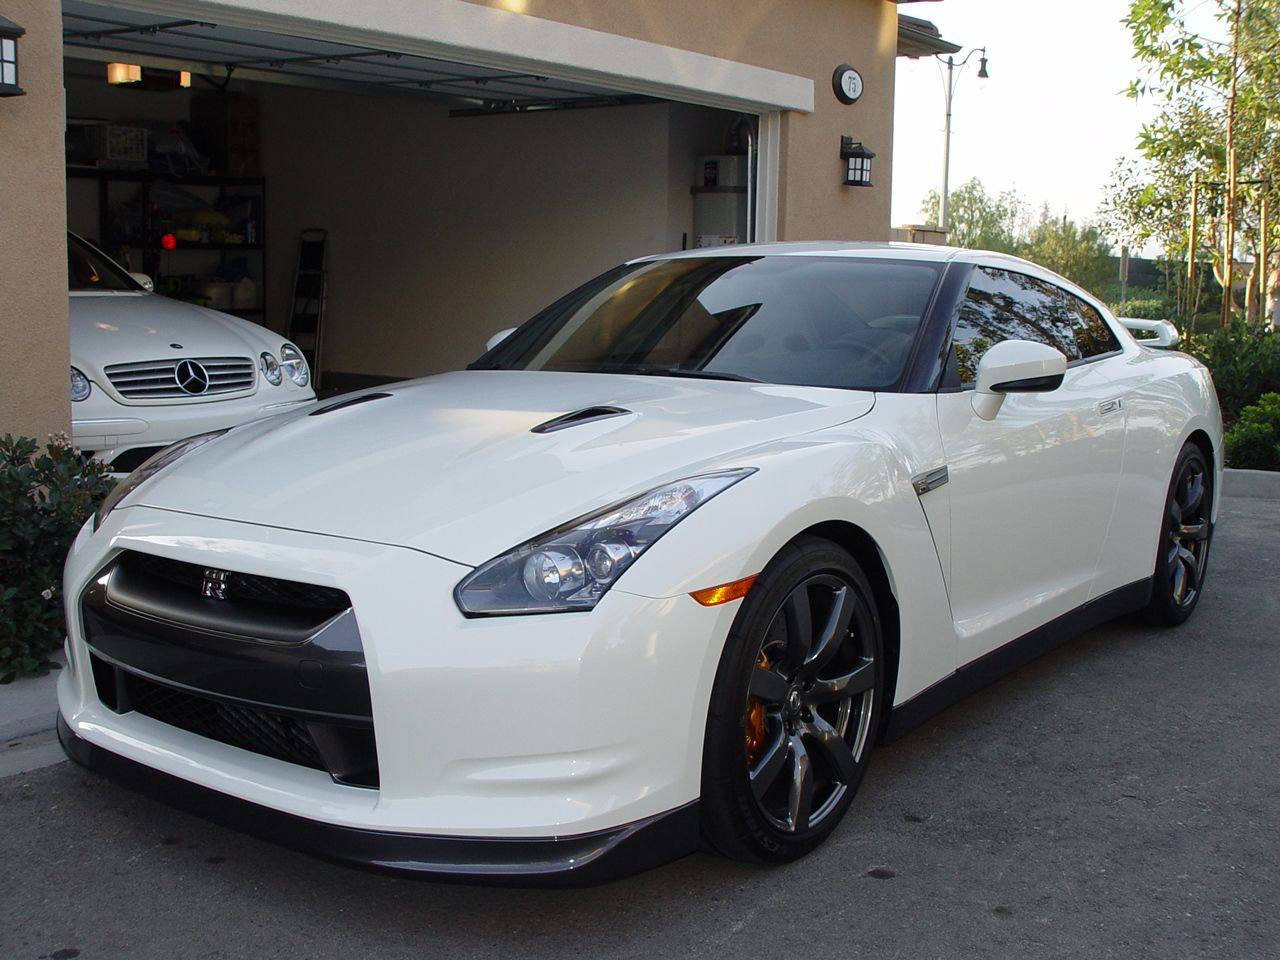 2009 Nissan GT-R | car review @ Top Speed